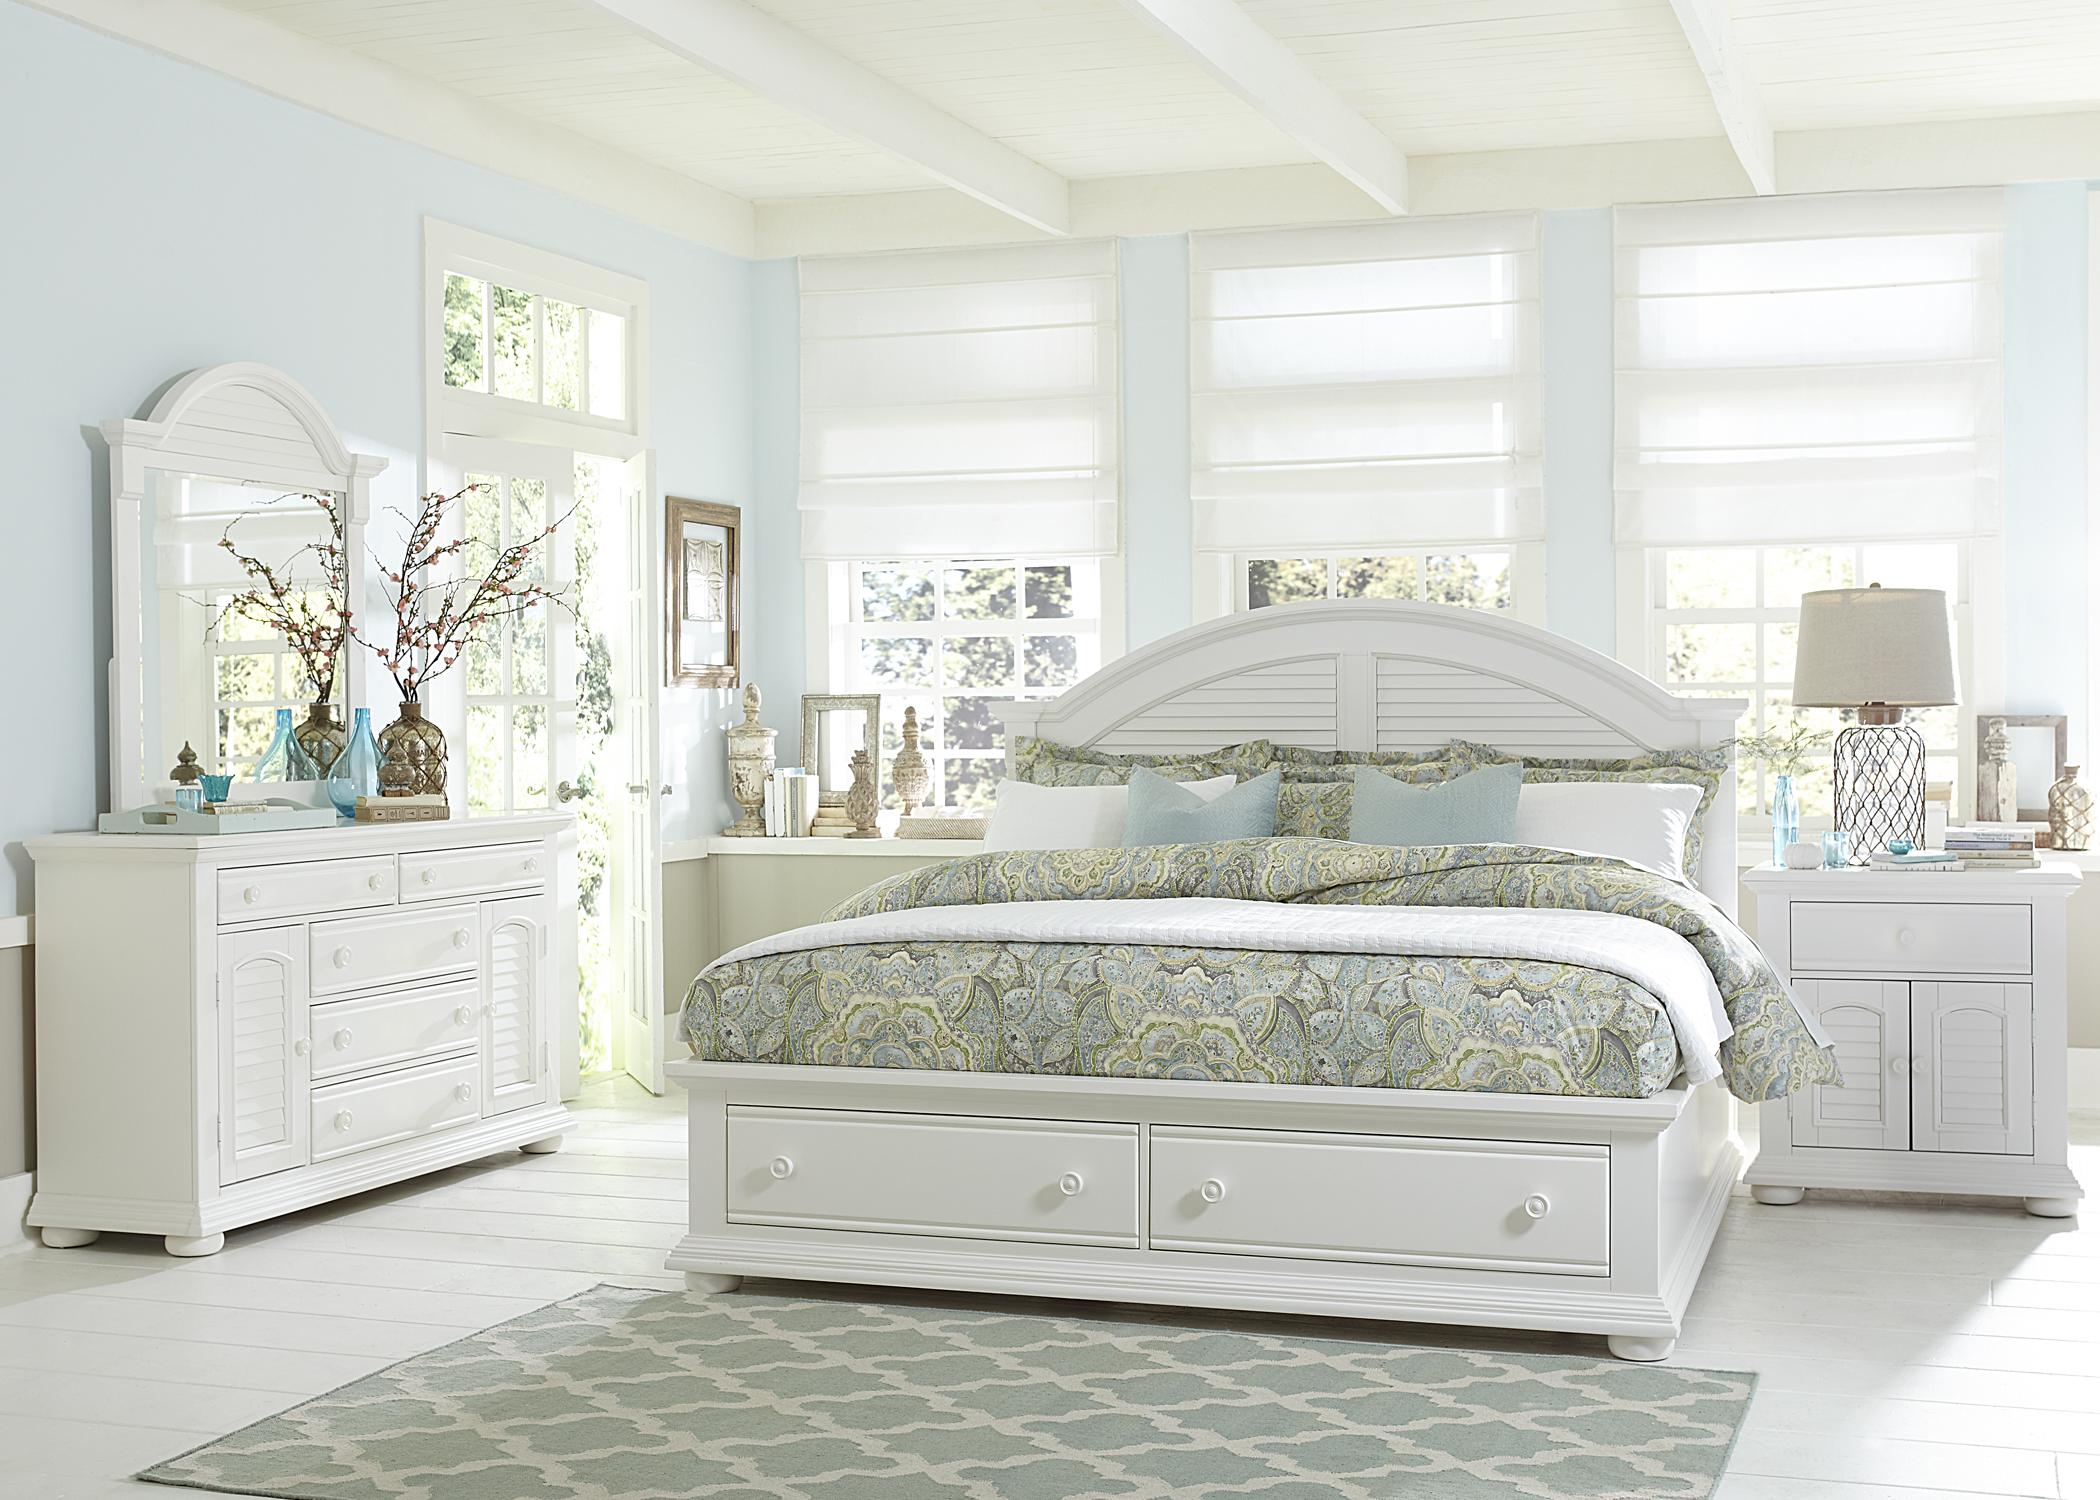 Liberty Furniture Summer House King Bedroom Group Hudson 39 S Furniture Bedroom Groups